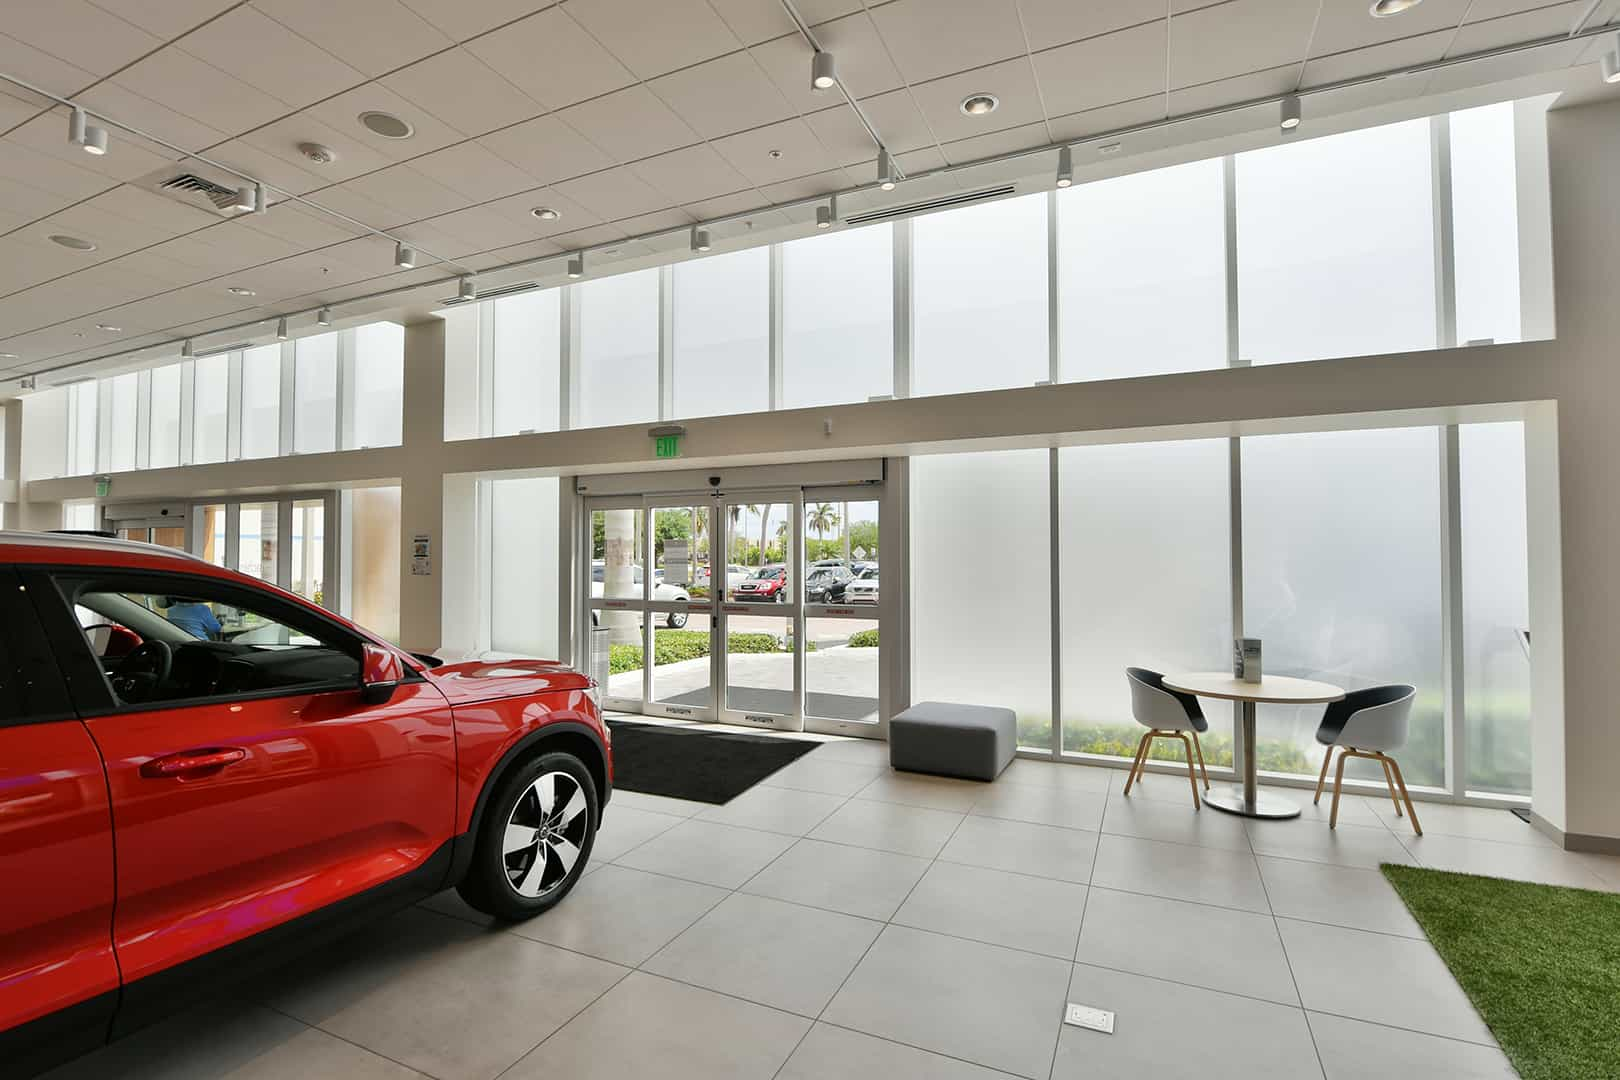 Interior view of car dealership looking through frosted FS-300 Maximum View Impact Storefront windows by Aldora, two sets of sliding glass doors, white tile floor and ceiling, seating area, red showcase vehicle in room